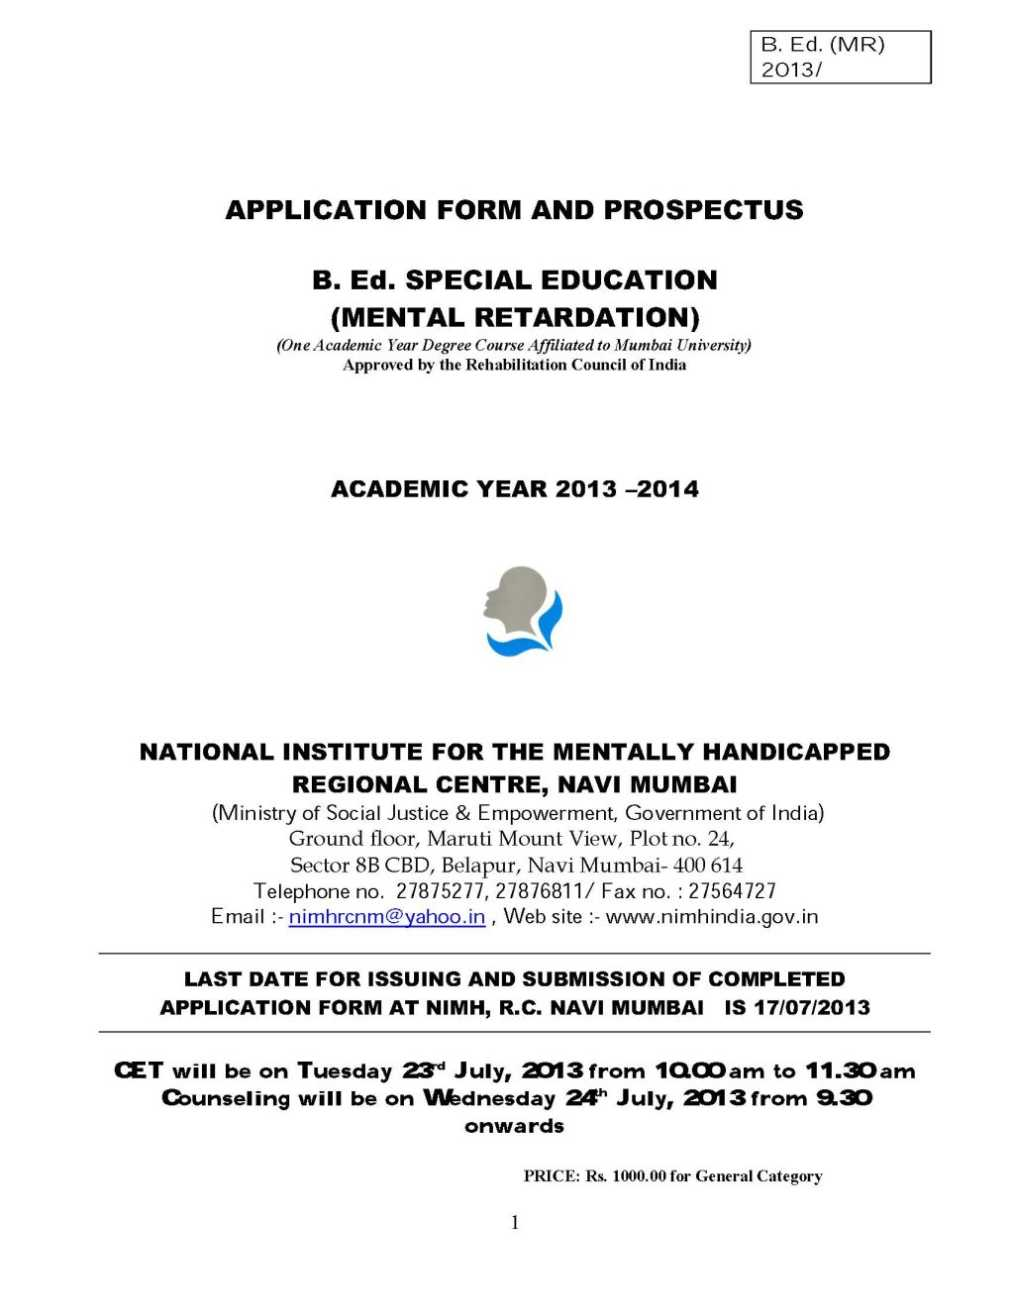 Account application form for mr price - Admission Is Given On The Basis Of The Merit Obtained By The Candidates In The Entrance Examination And Followed By Counseling Interview Conducted As Per